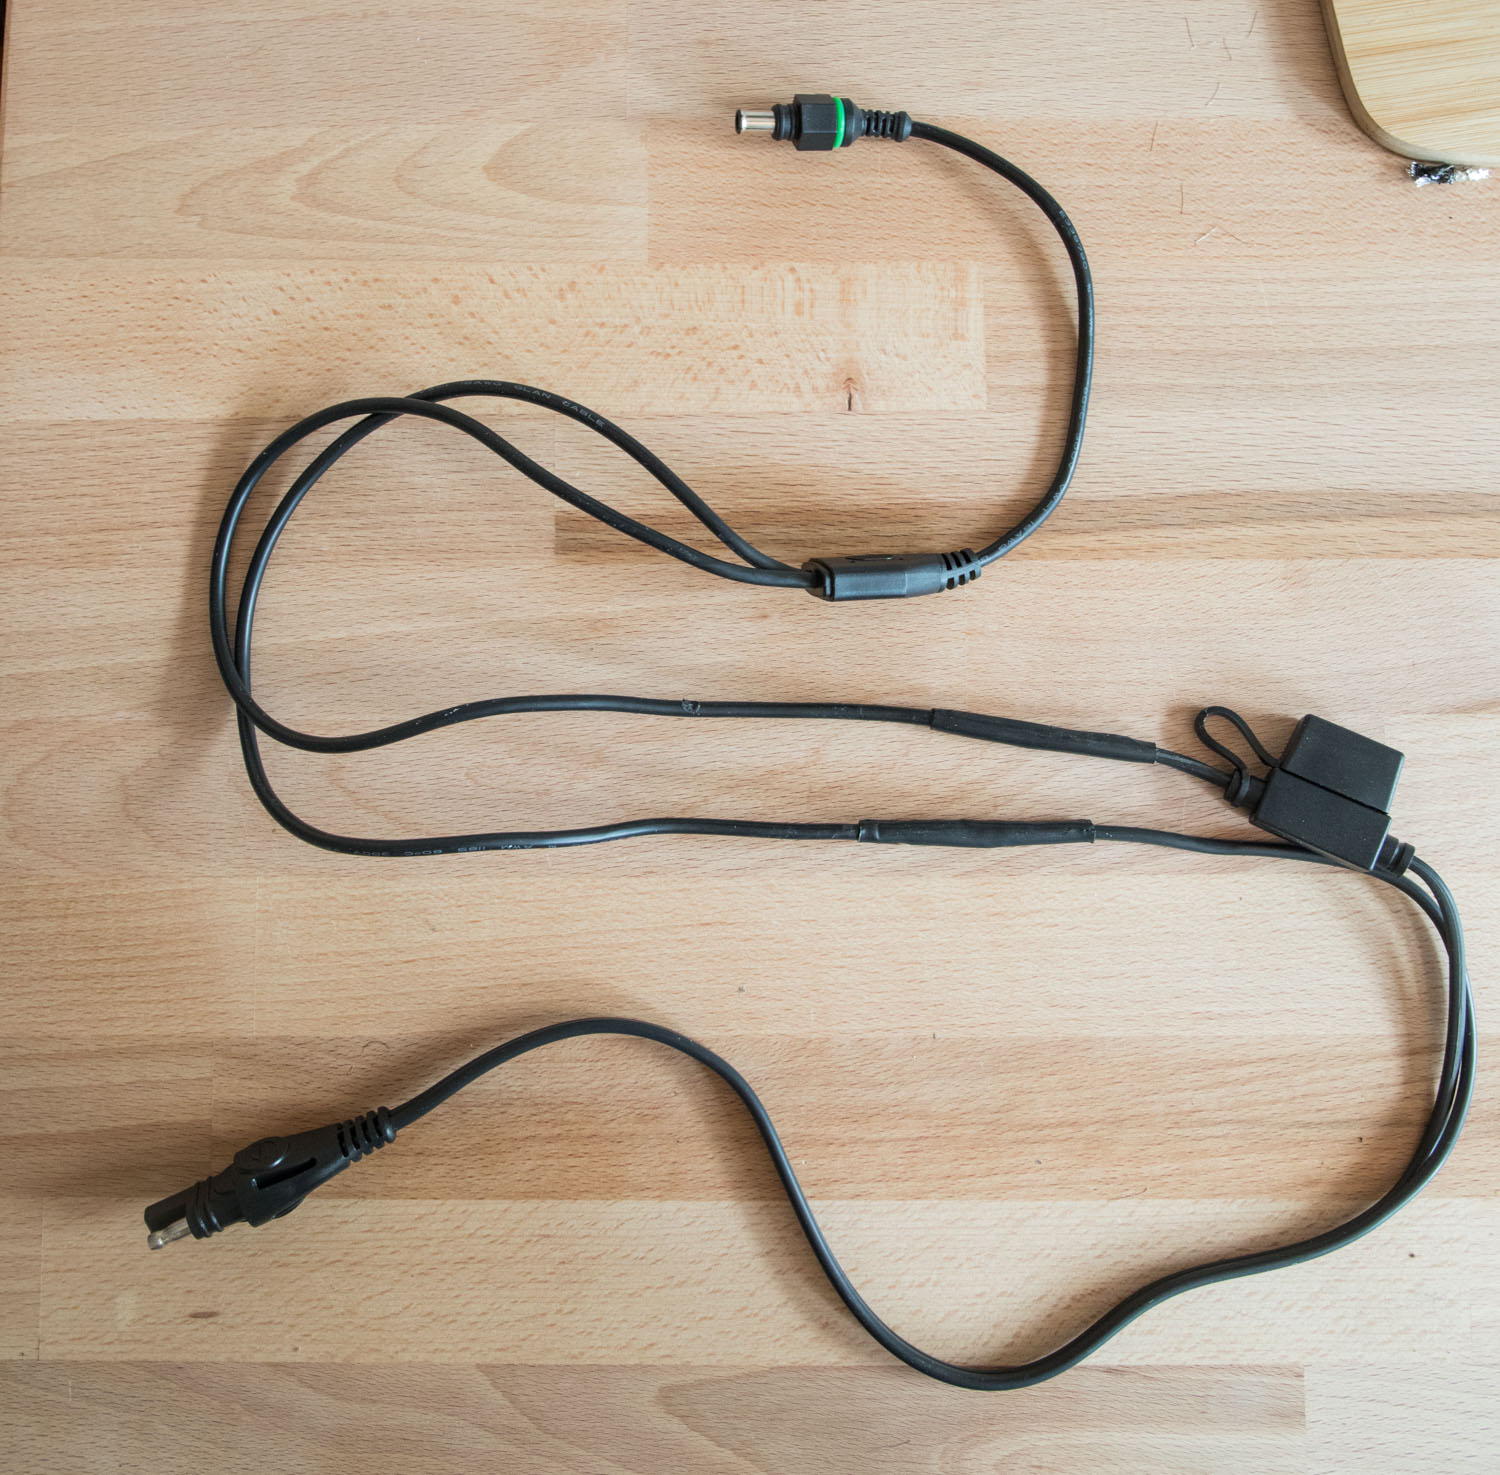 How To Wire A Goal Zero Solar Panel Zamp Connector Auto Meter Tach Wiring Pro Cycle Youll Make Real Mess Simply Hold It Underneath The Cable As Close You Can Without Touching And Move Back Forth Until Has Shrunk Around